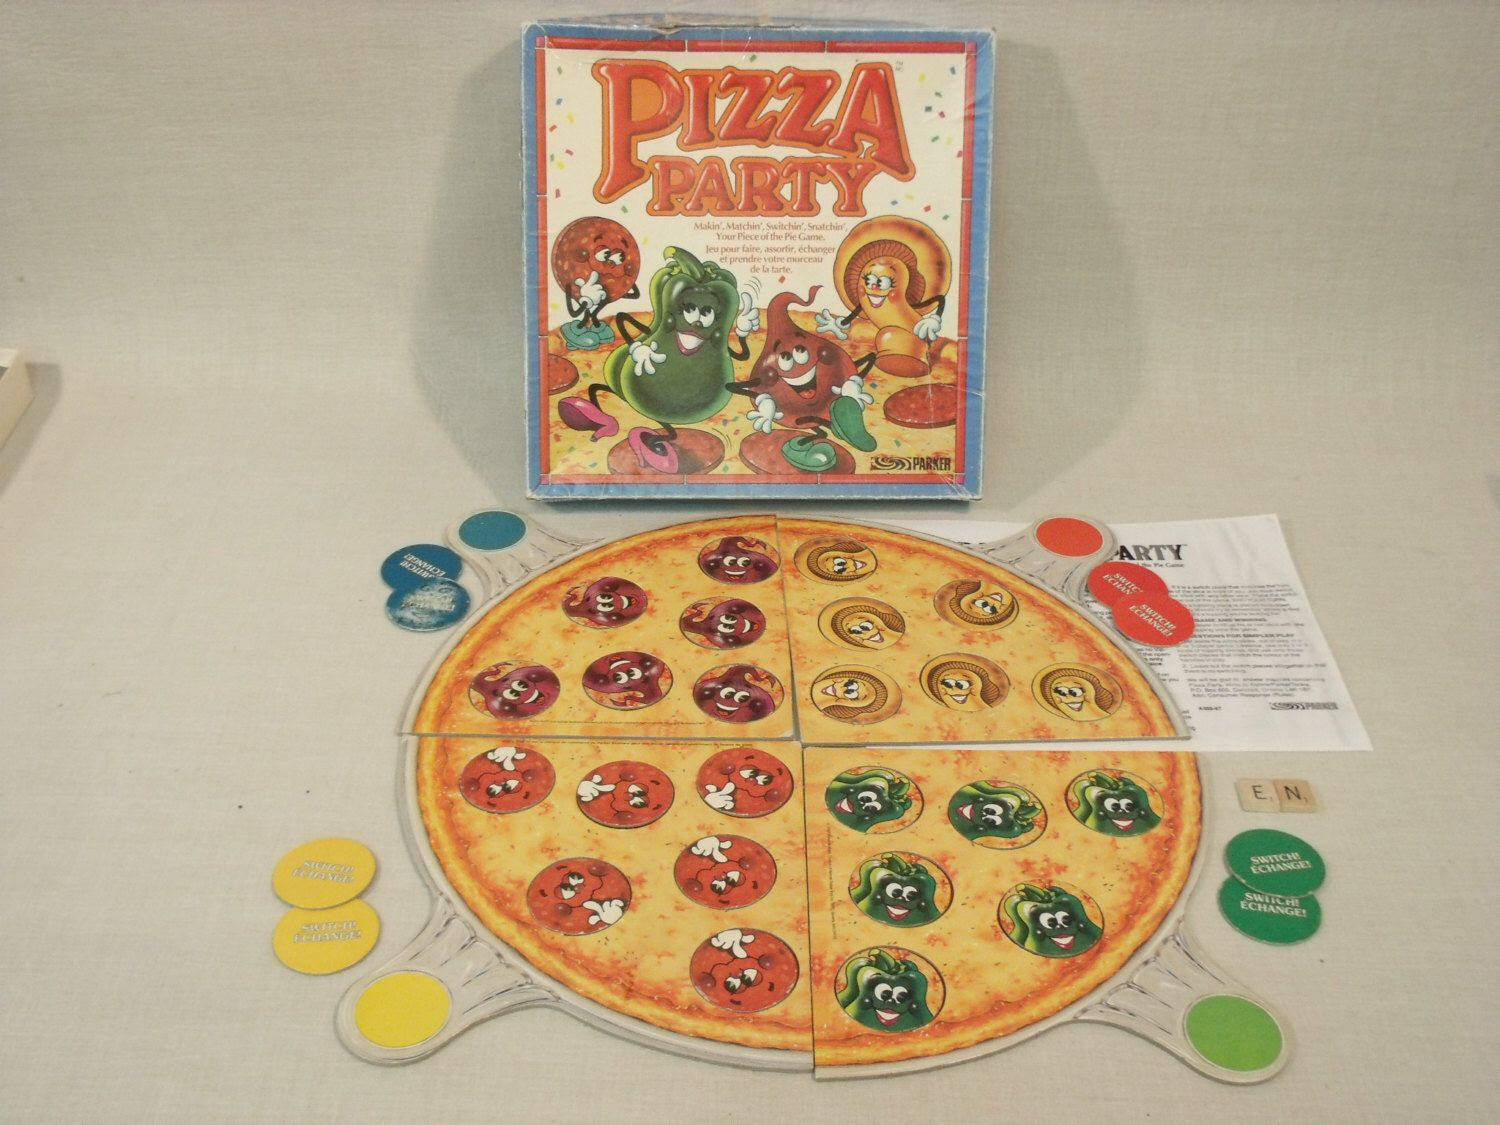 Vintage Pizza Party Matching Board Game 1987 100 Complete Parker Brothers By Boardgamerecycler On Etsy